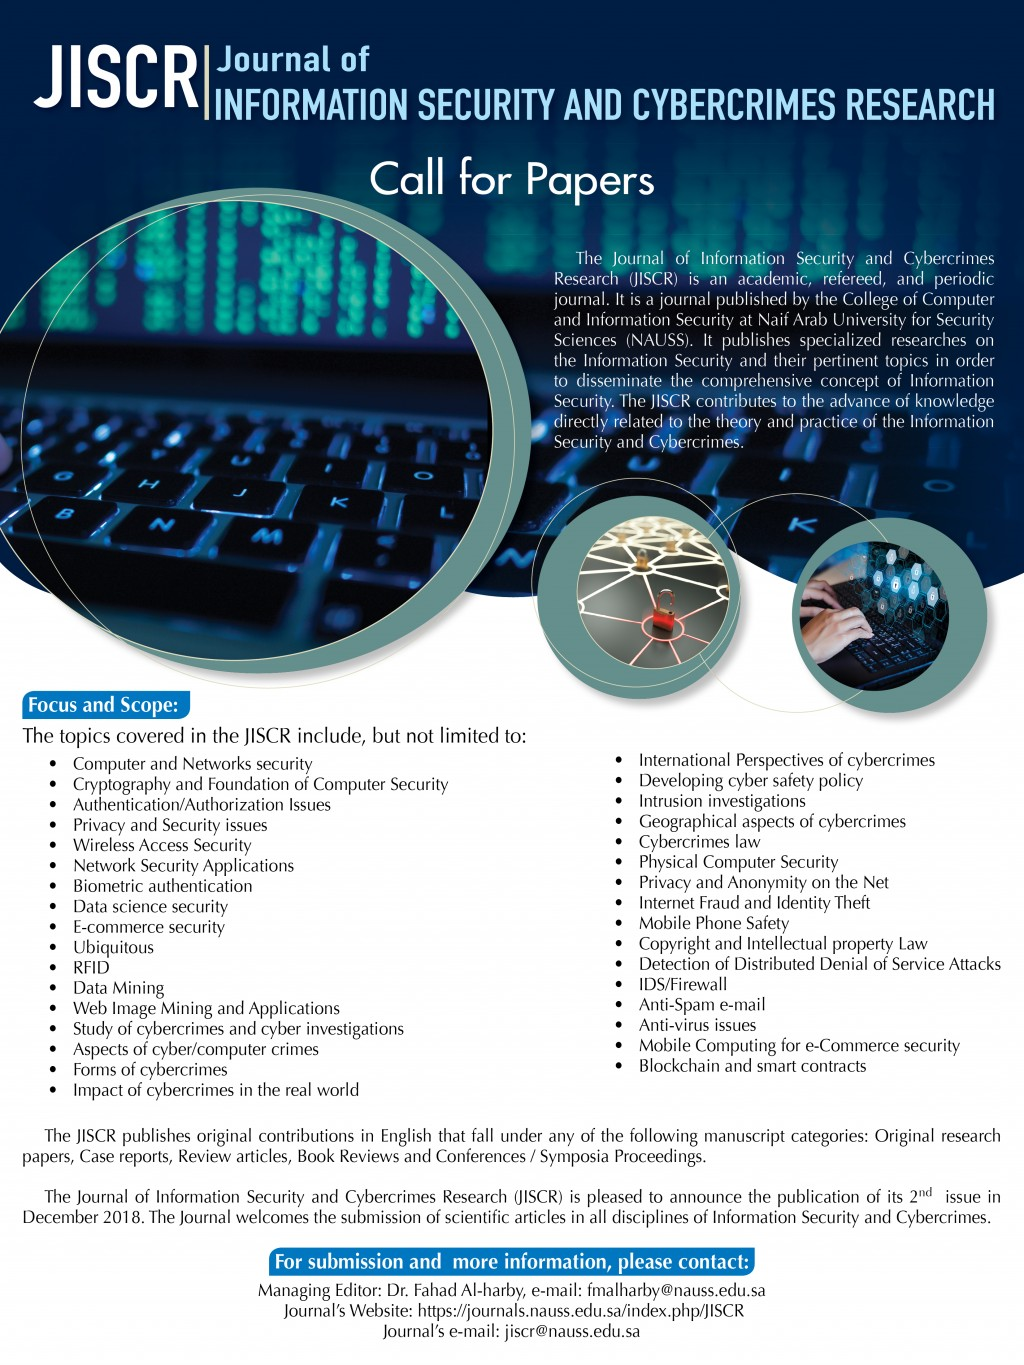 021 Research Paper Call For December Cyber Security Wondrous Papers 2018 Pdf Topics Large